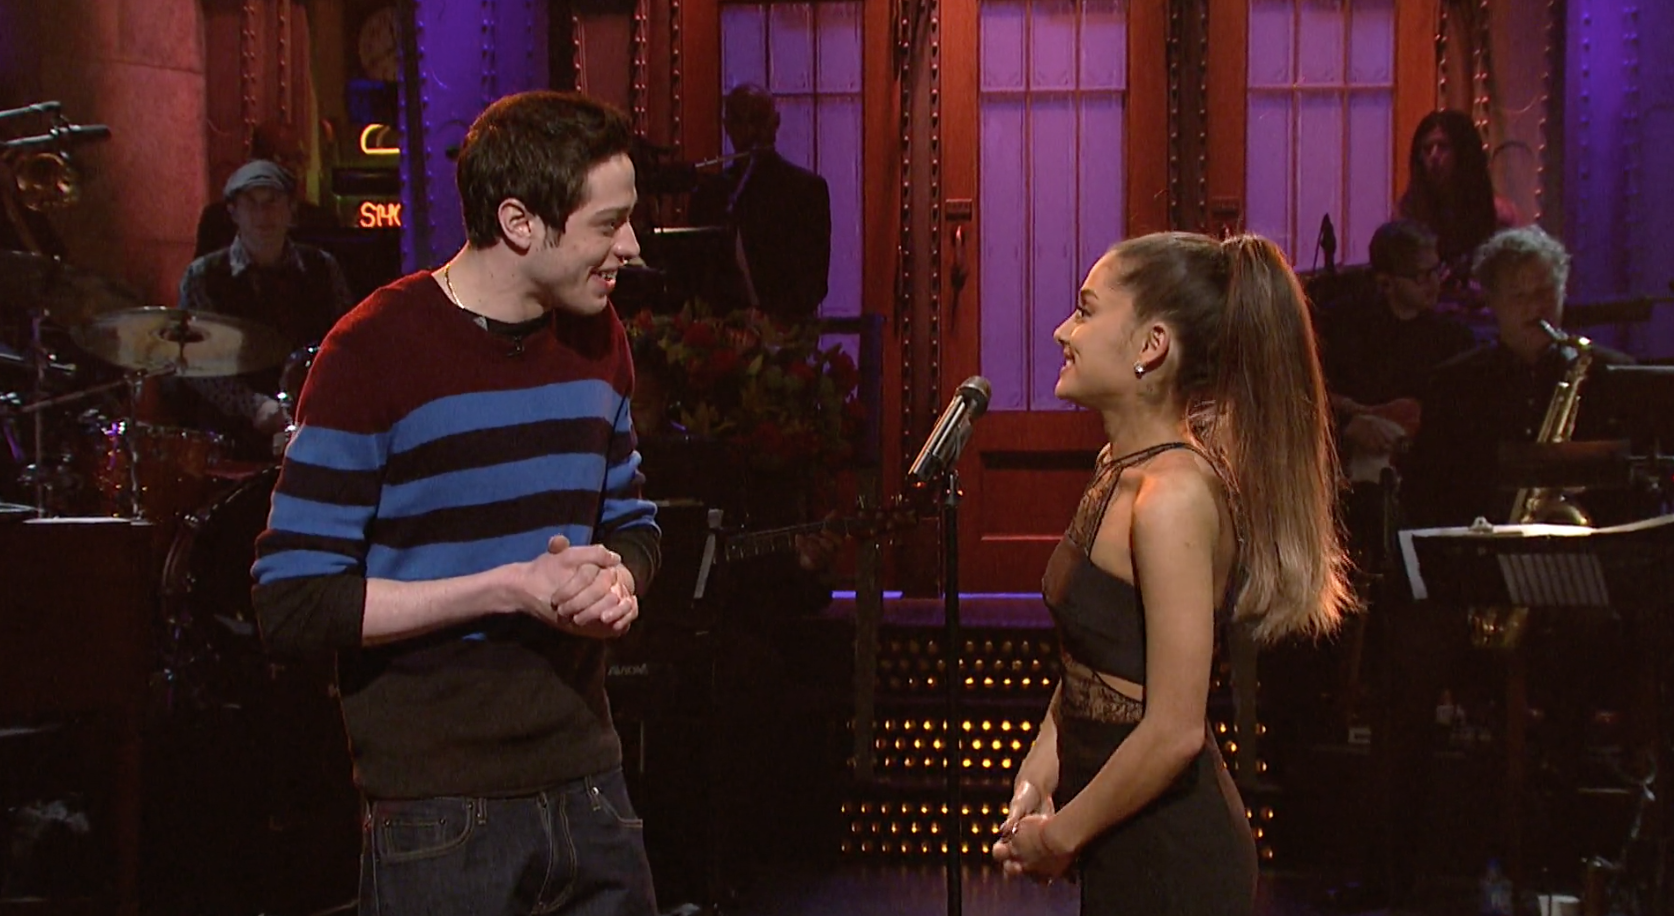 A Body Language Expert Analyzes Ariana Grande And Pete Davidsons First Public Appearance